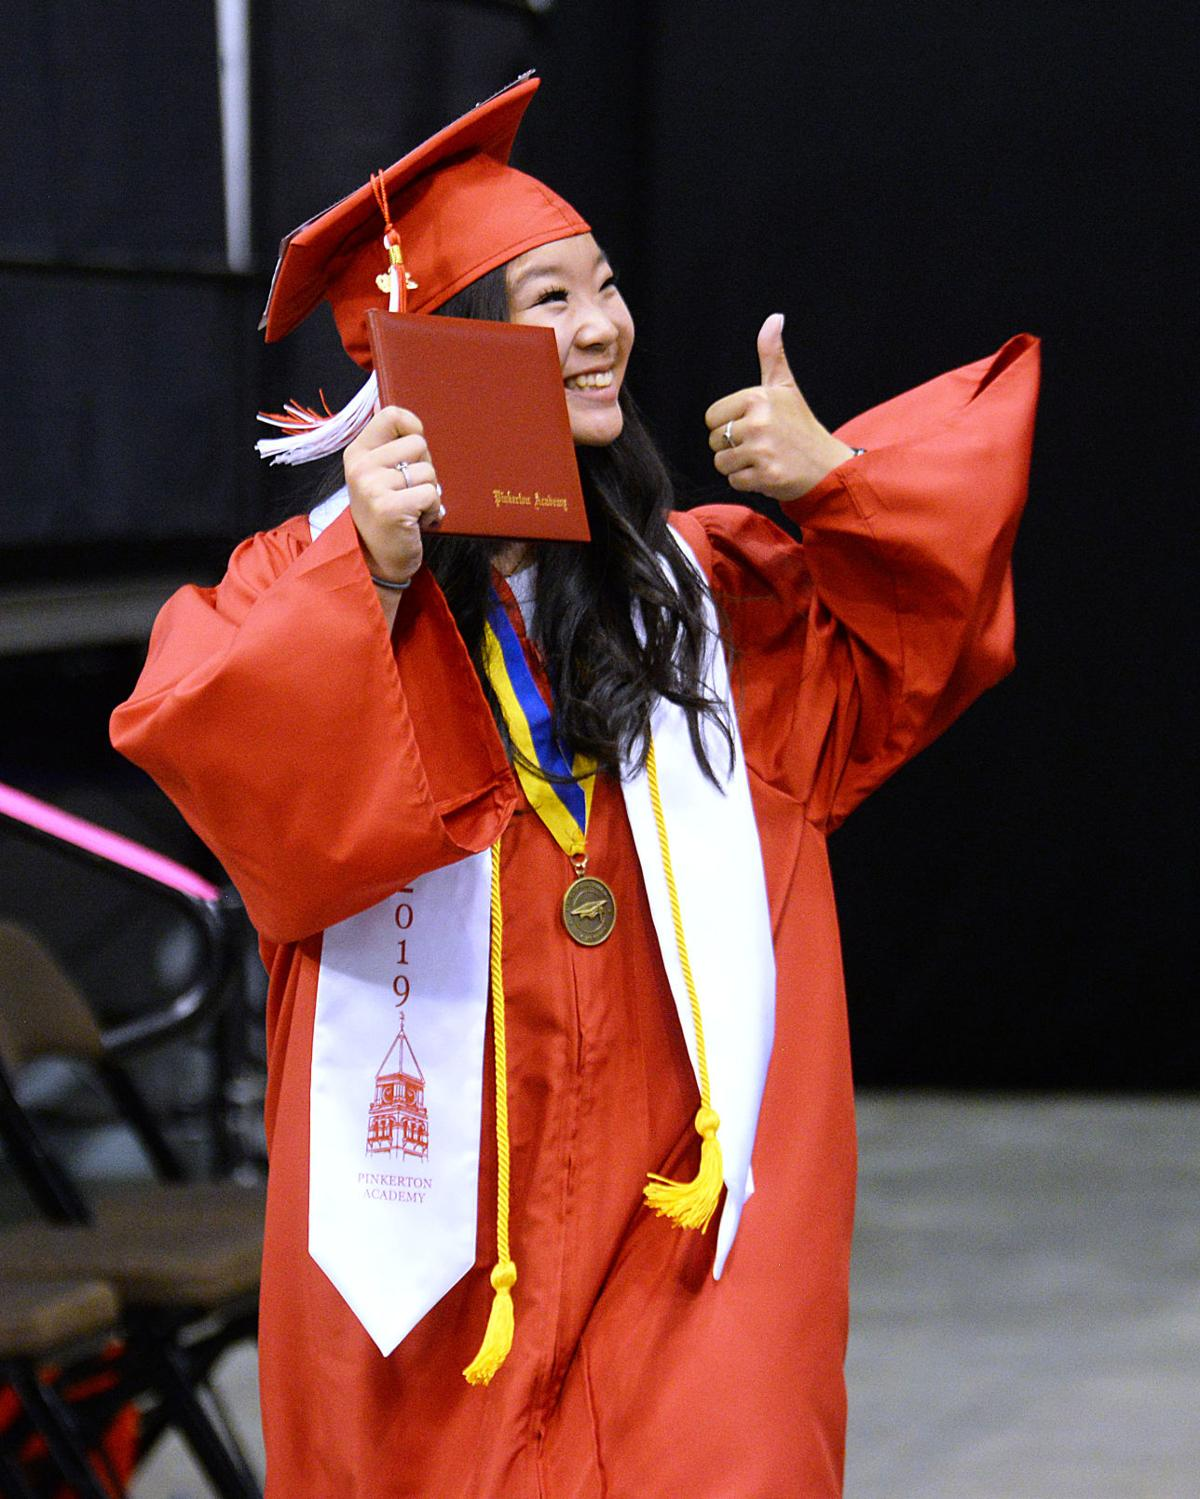 SLIDESHOW: Pinkerton Academy Graduation 2019 | Gallery